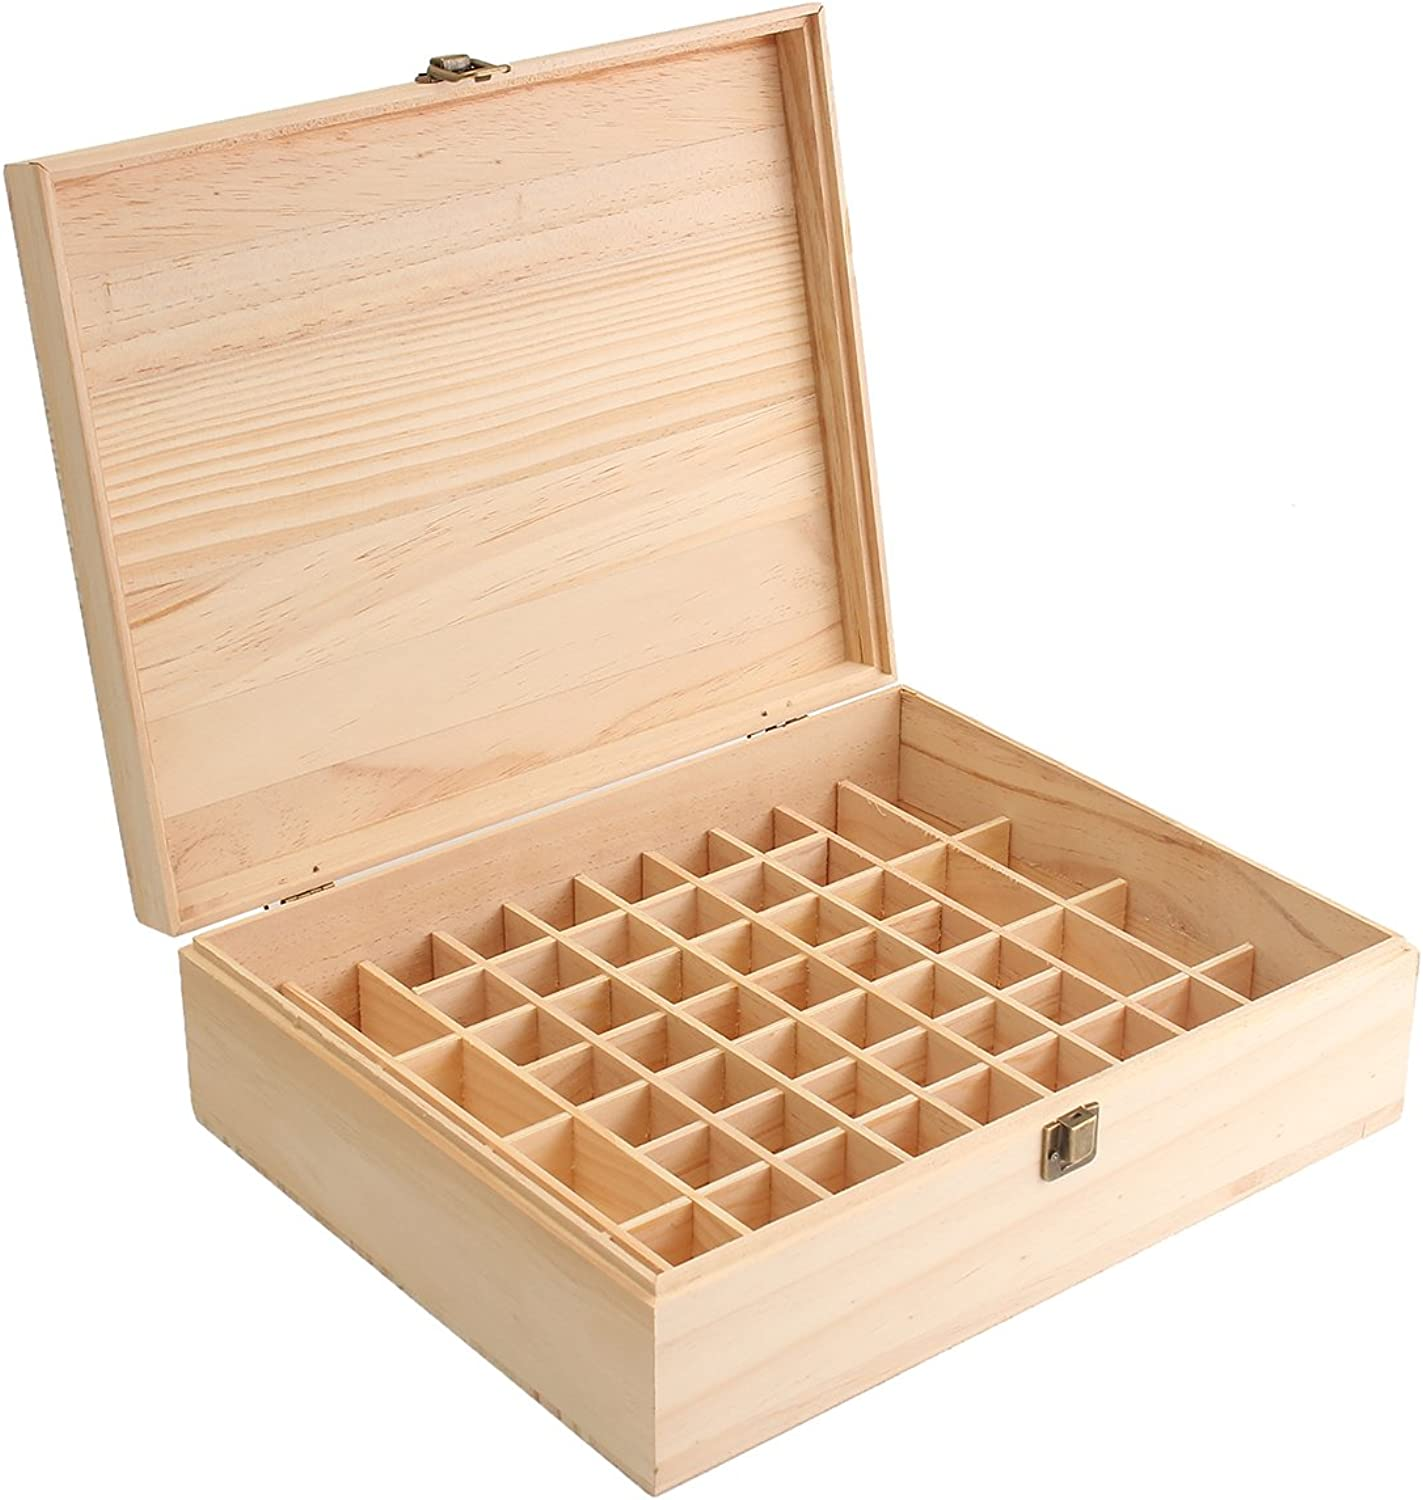 Fincos 68 Slot Essential Oil Wooden Box Organizer Large Wood Storage Case Holds